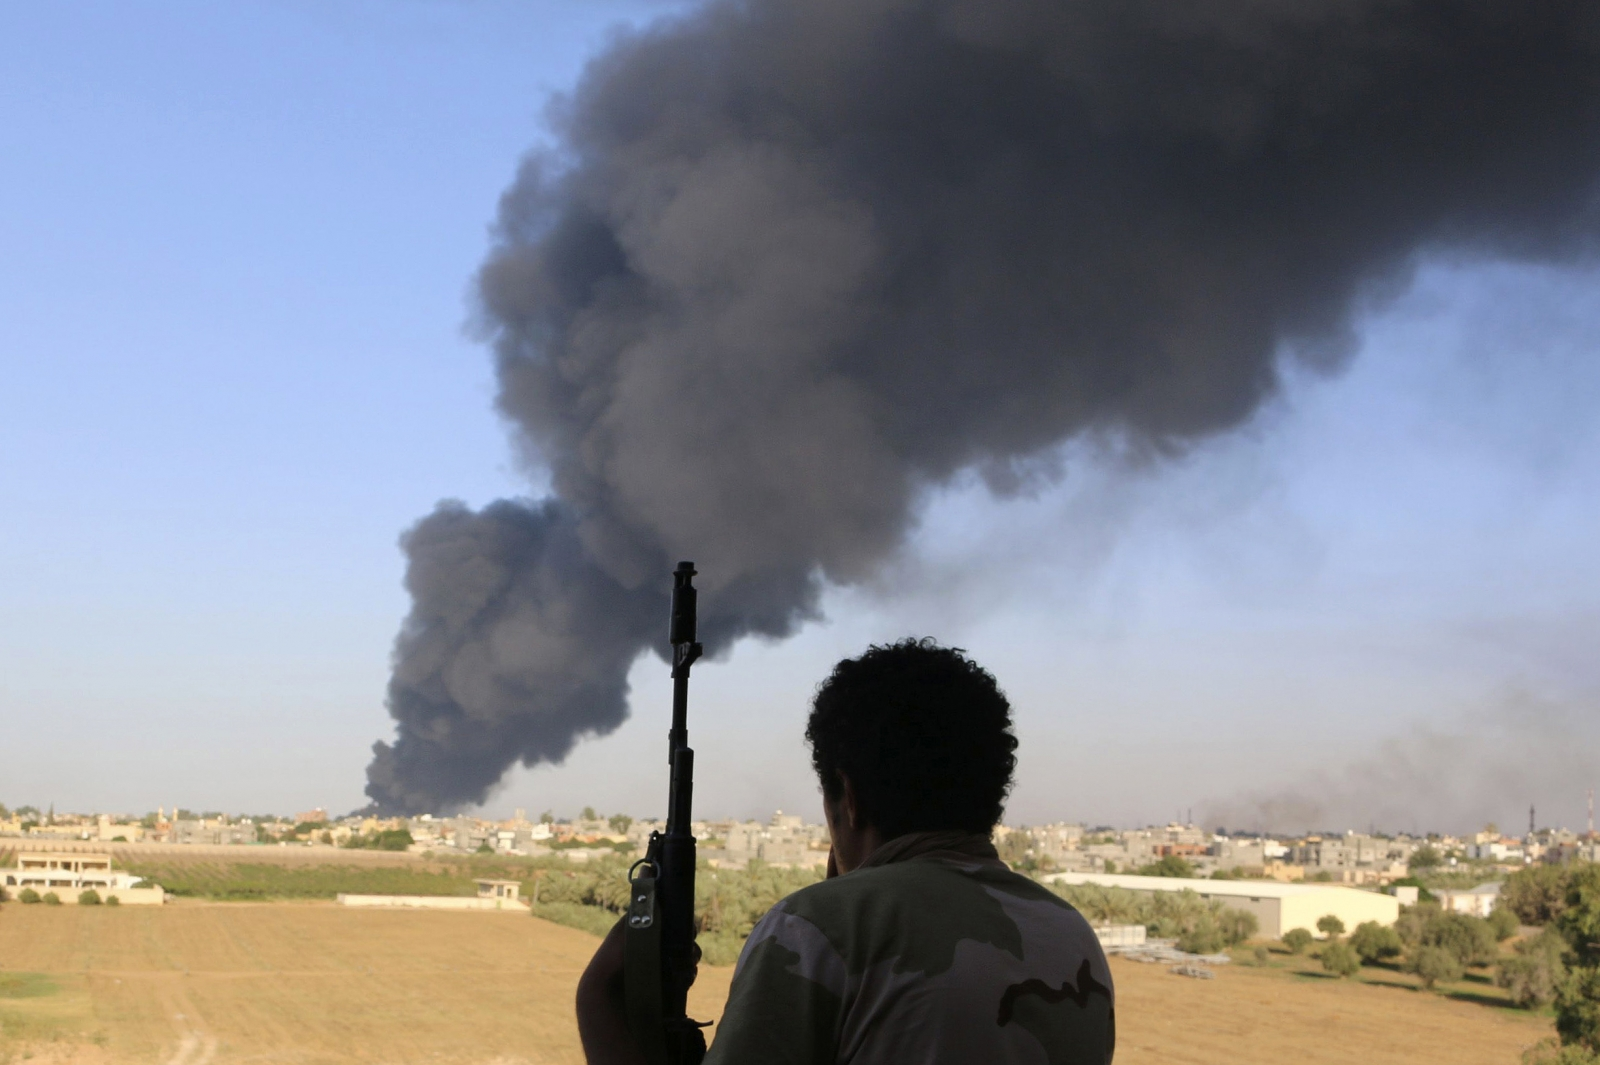 Rival militias competing for power have targeted Libya's parliament